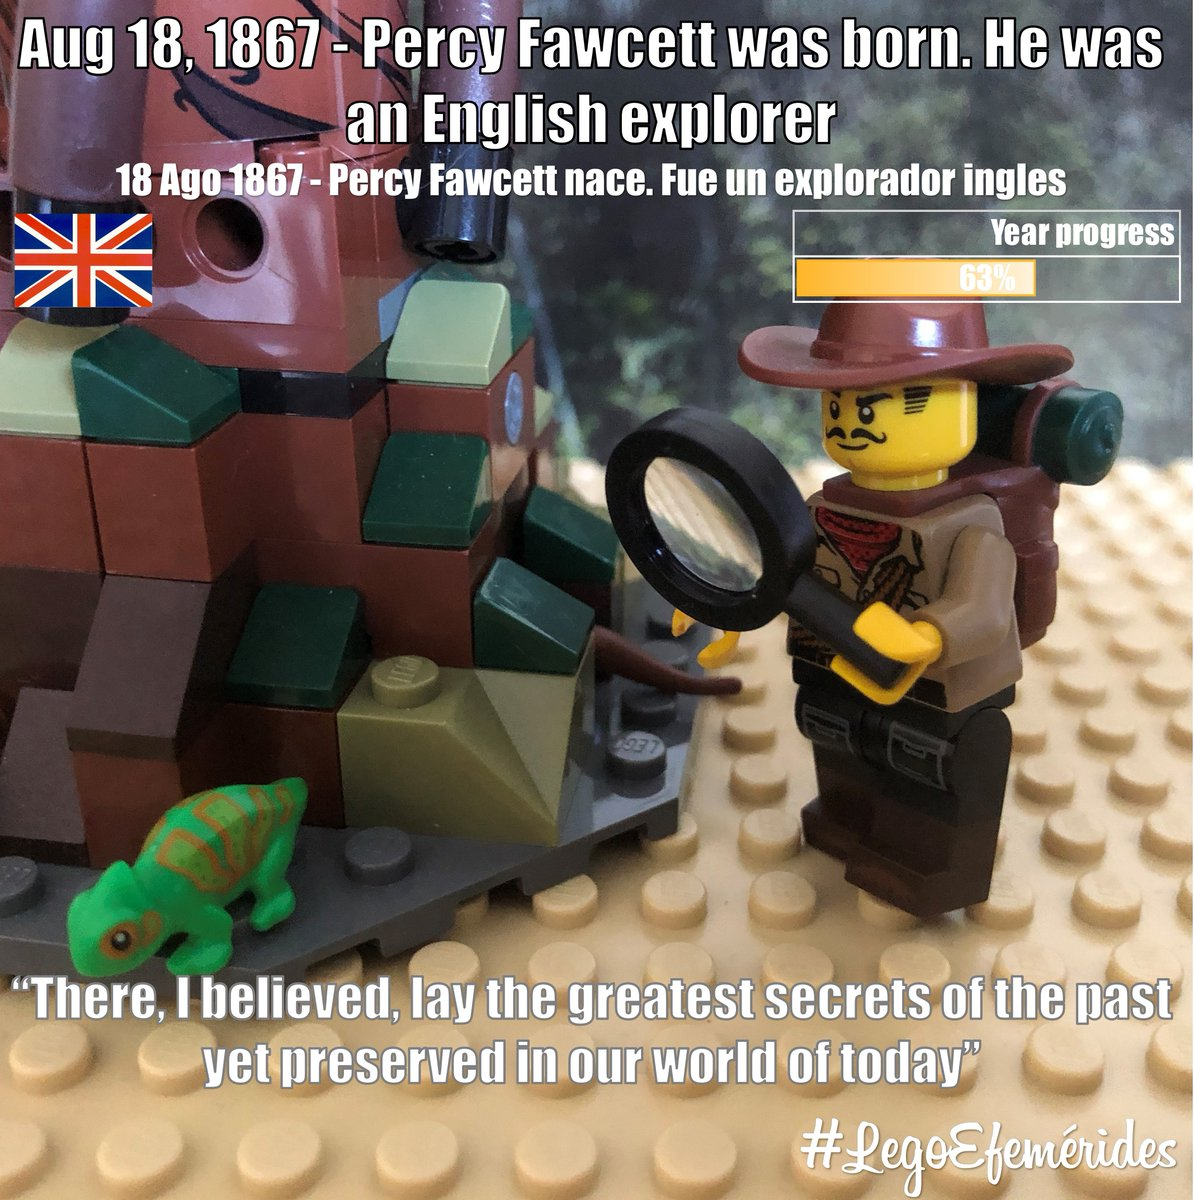 #Aug18 #1867 - #PercyFawcett was born. He was an #English #explorer #18Ago 1867 - Percy #Fawcett nace. Fue un #explorador #ingles There, I believed, lay the greatest secrets of the #past yet preserved in our #world of today --- #18deAgosto #HappyBirthady #FelizCumpleaños https://t.co/nV59dW306s